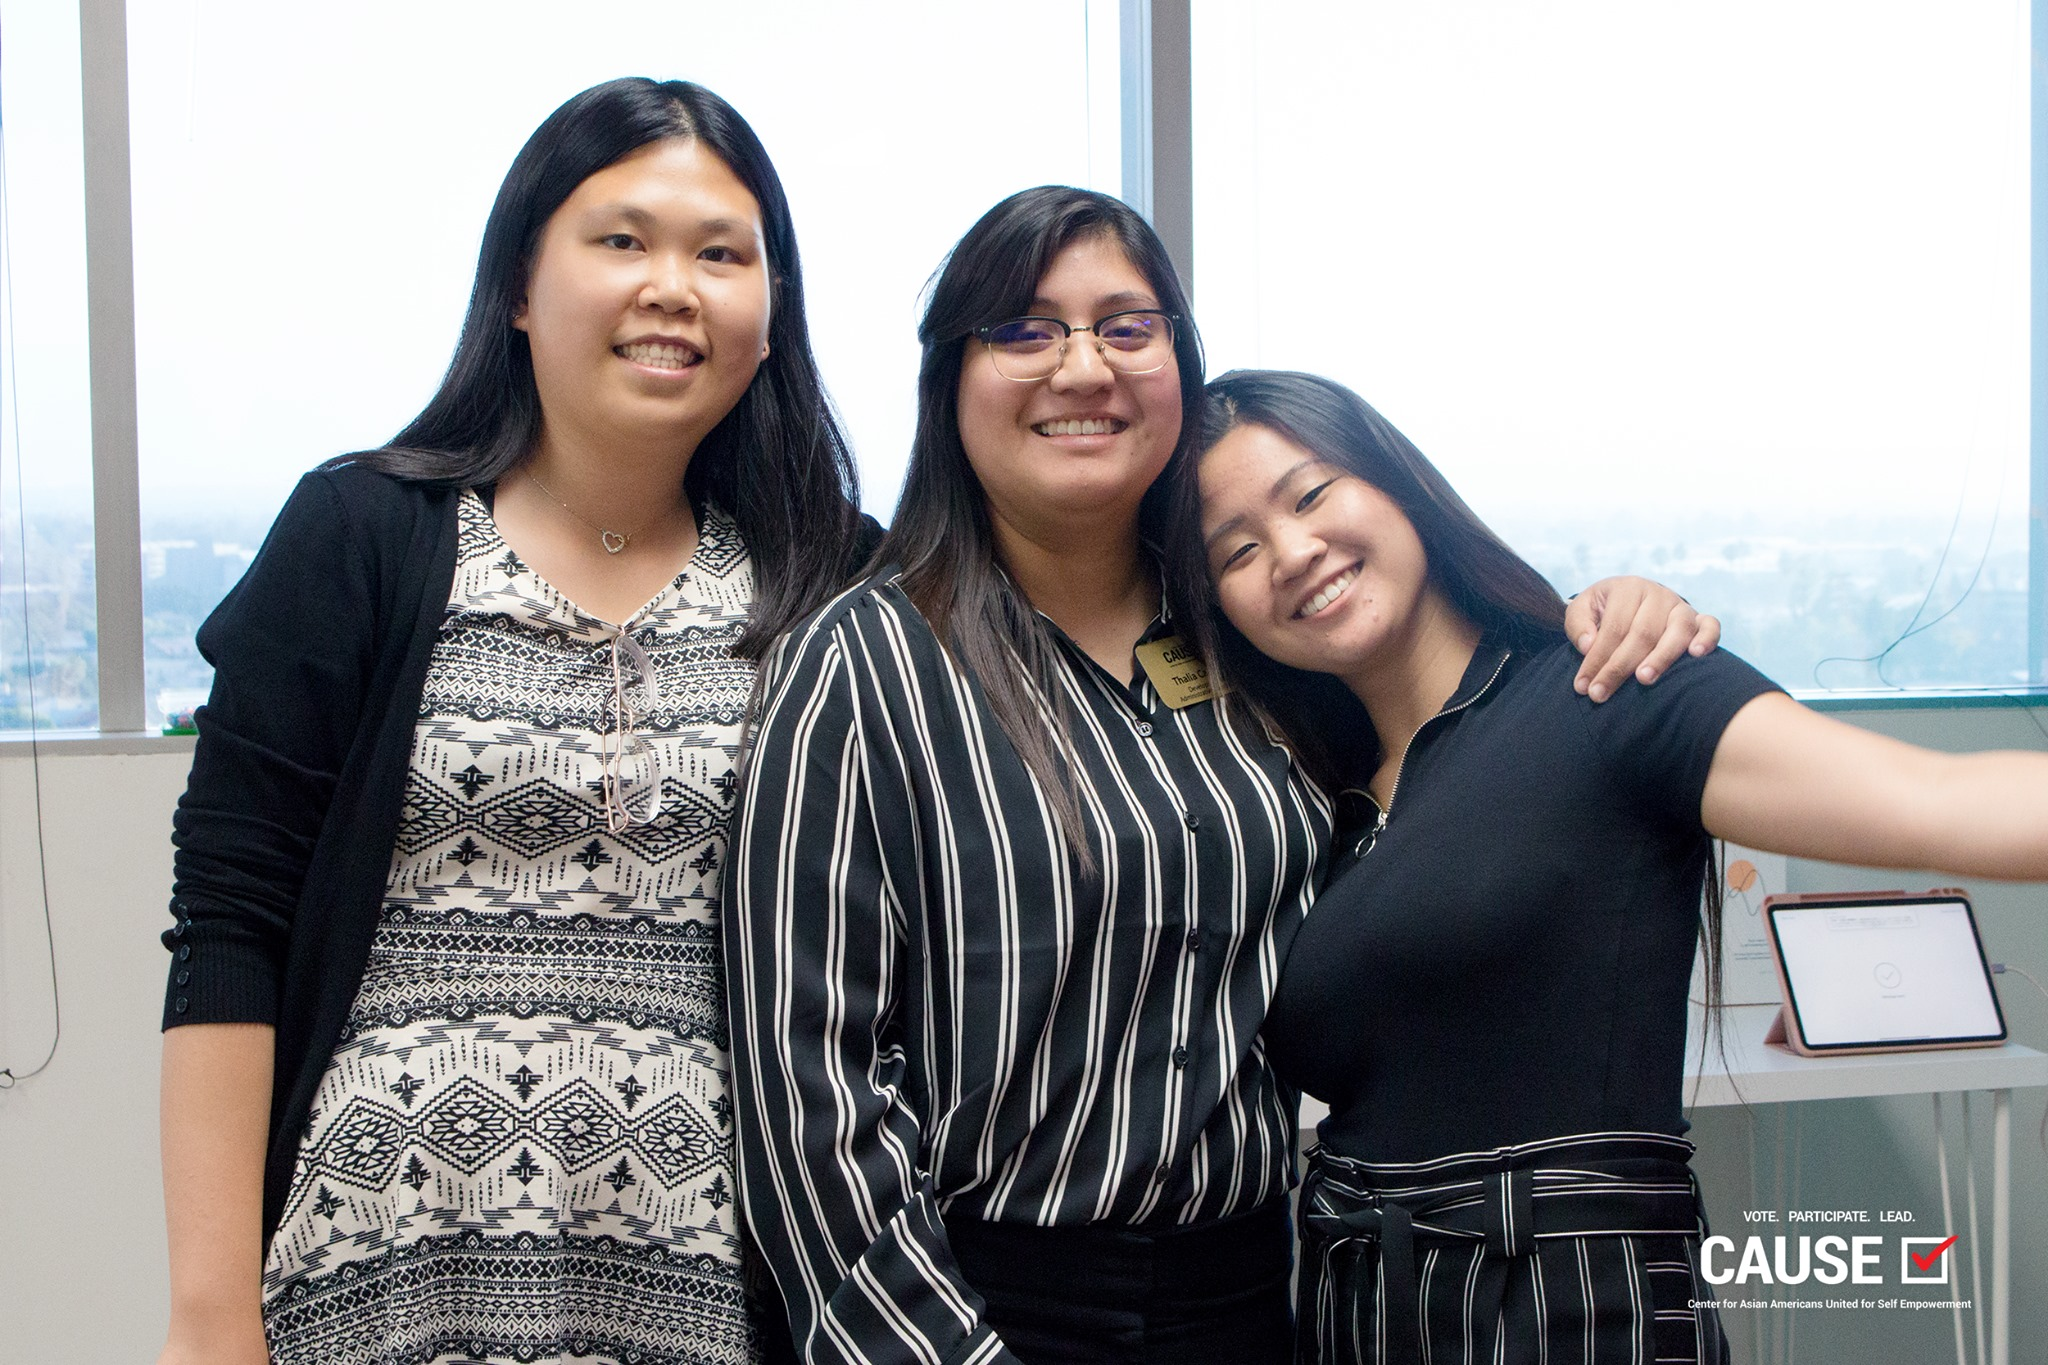 Yanqing Lei, Thalia Campos, and Kristie Lam at the 2019 CAUSE Summer Alumni Mixer